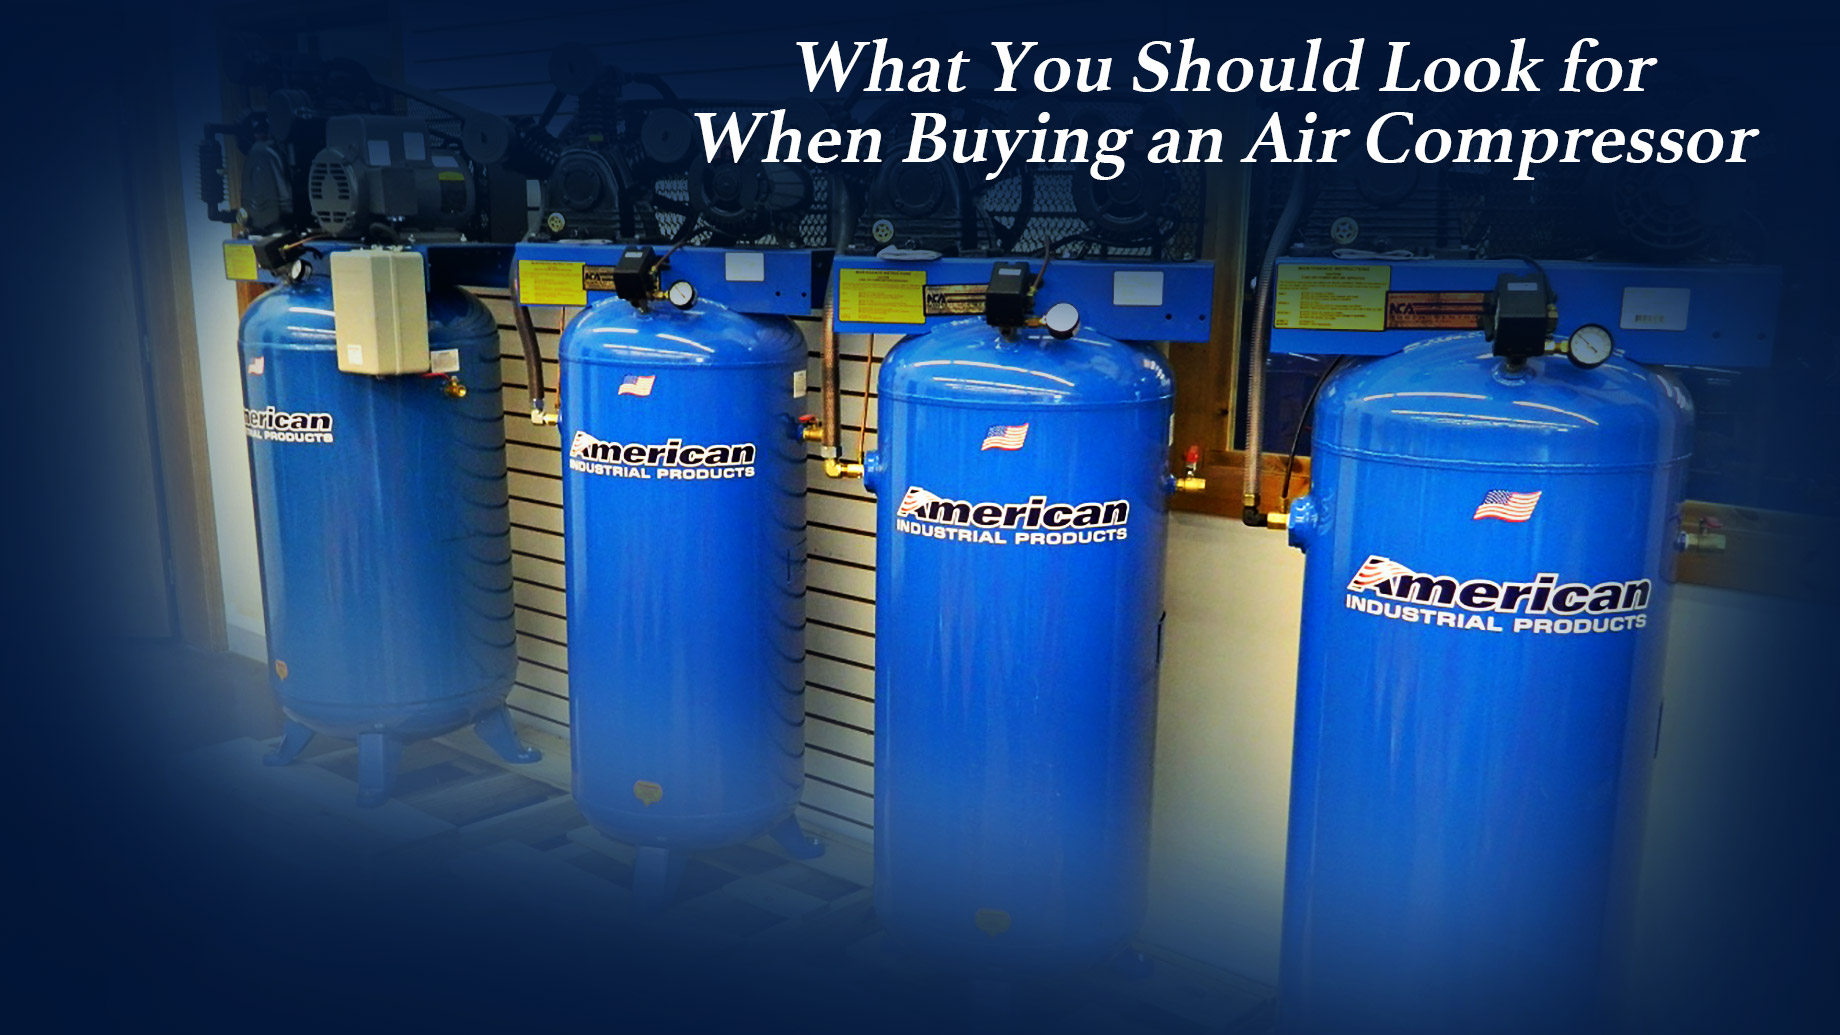 What You Should Look for When Buying an Air Compressor